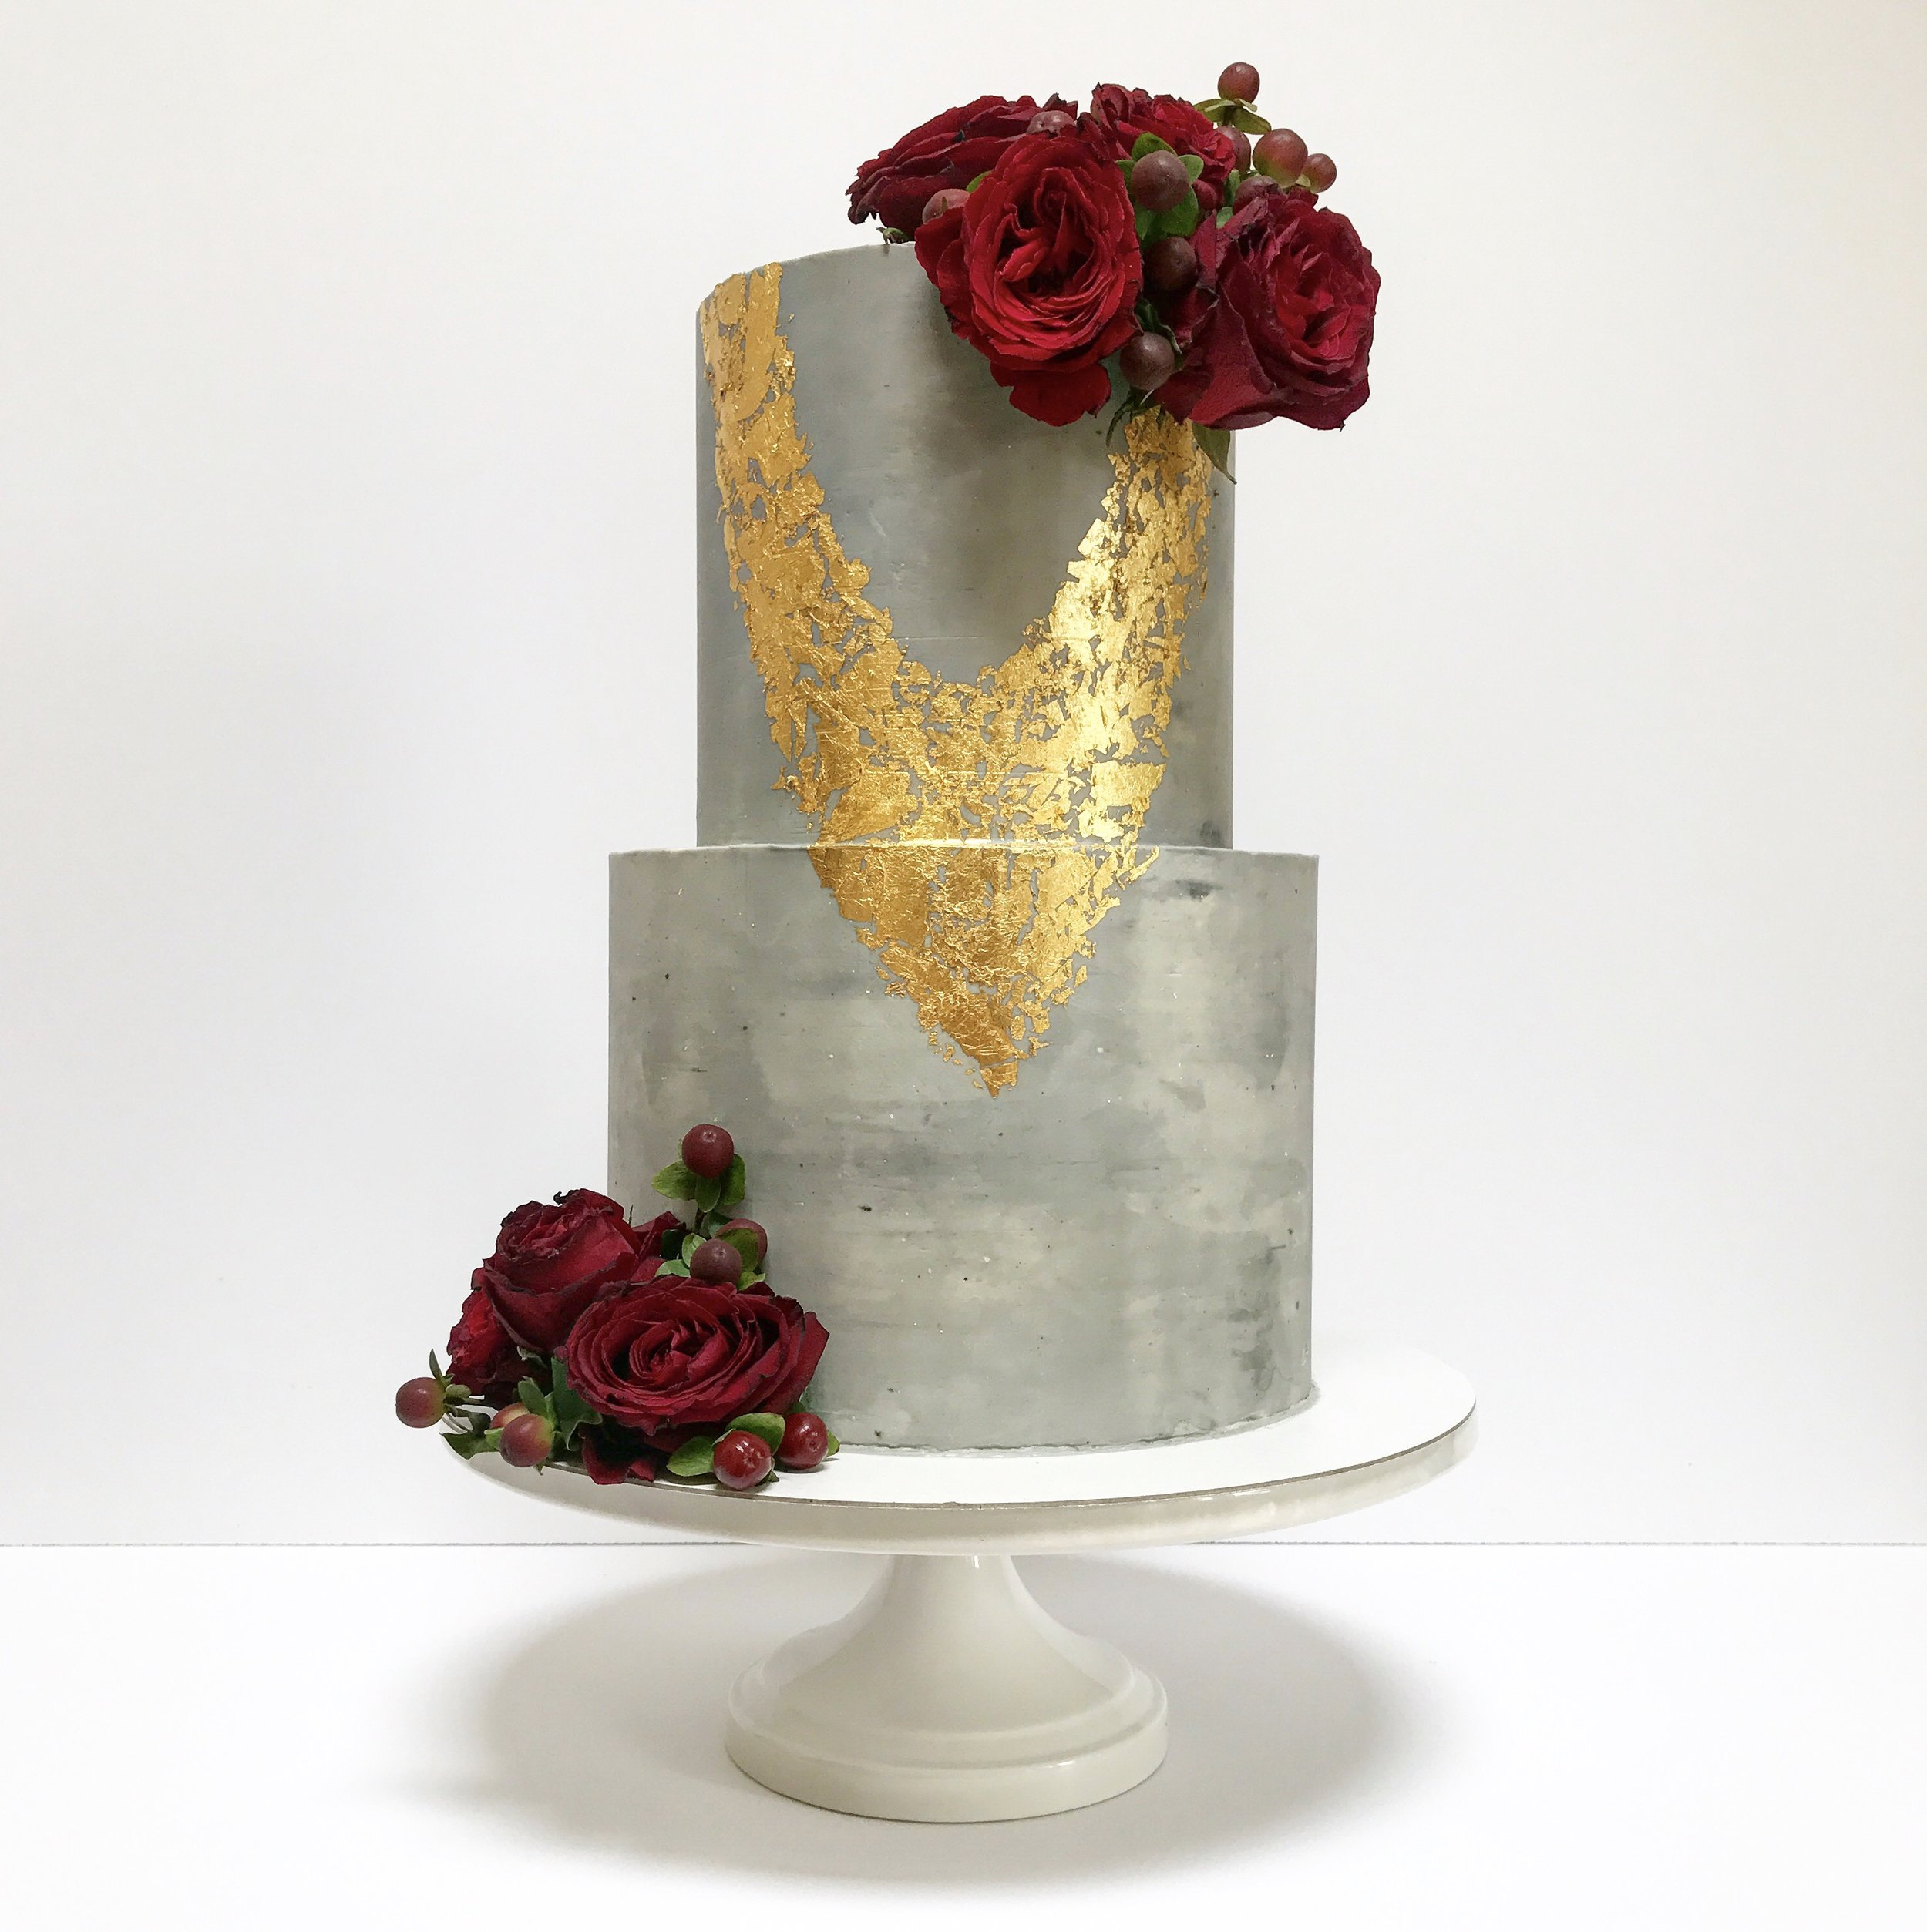 Concrete Cake with Deep Red Roses and Gold Foil.jpg